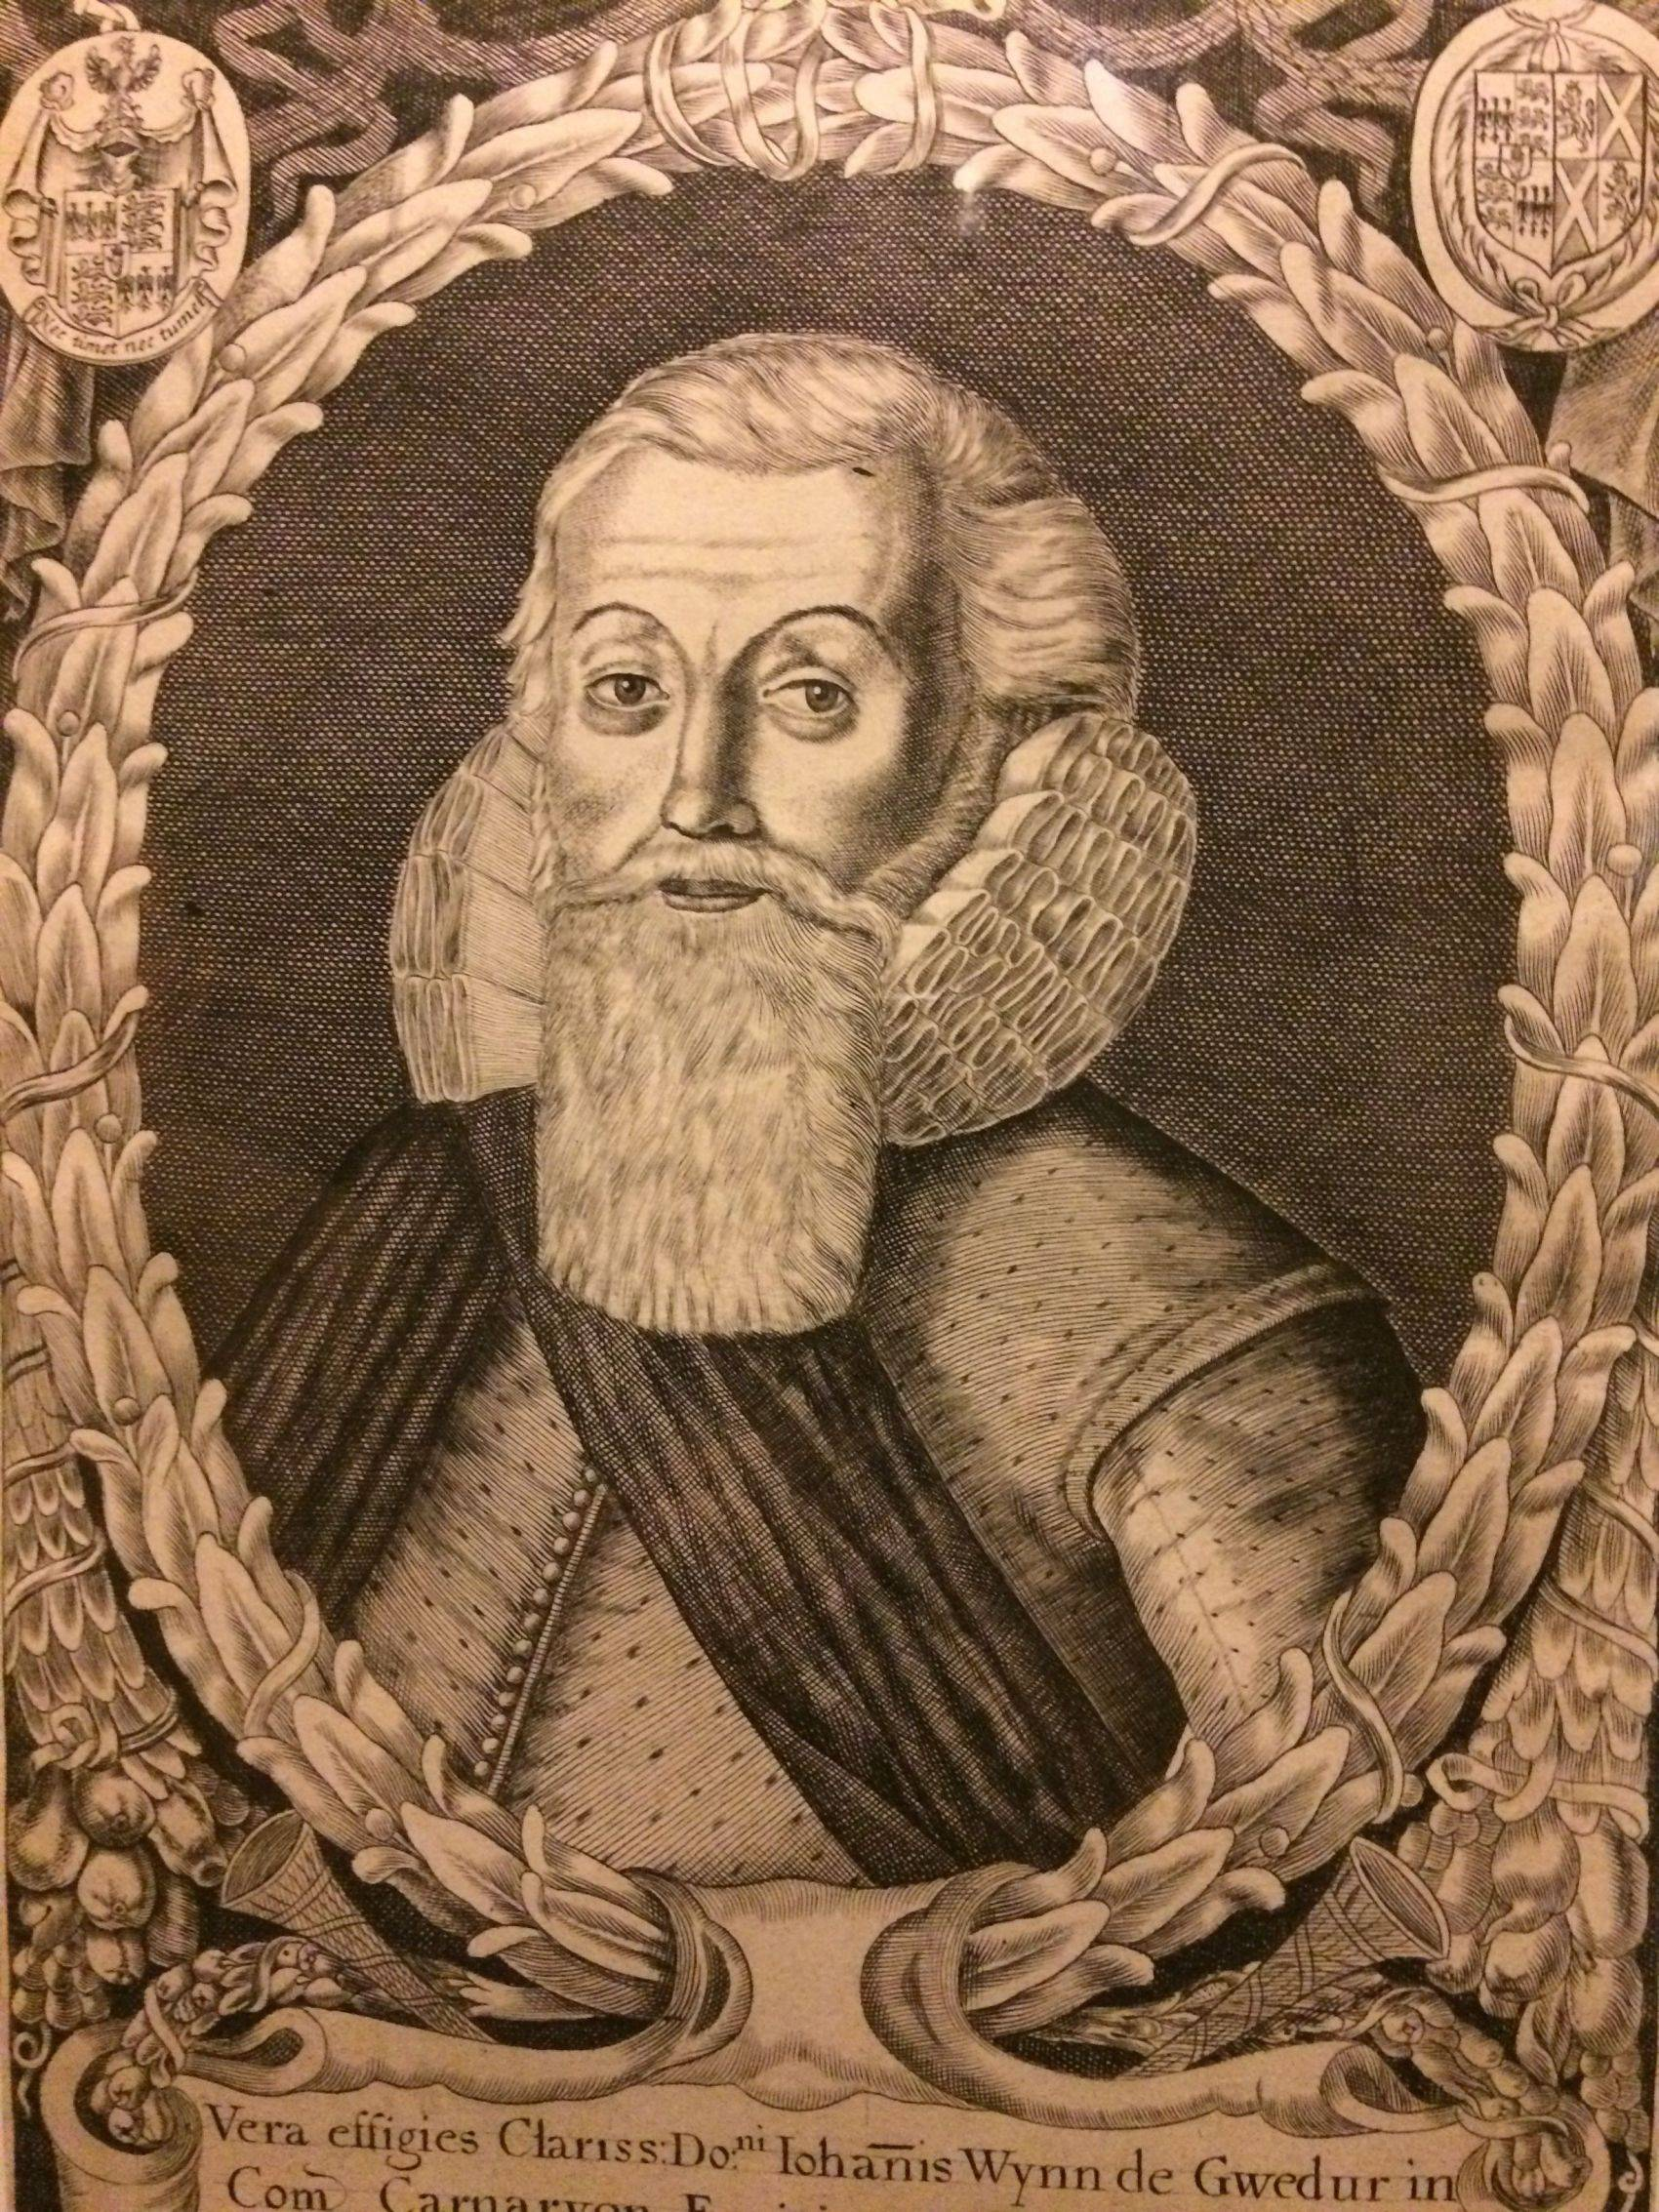 Sir John Wynn, First Baronet